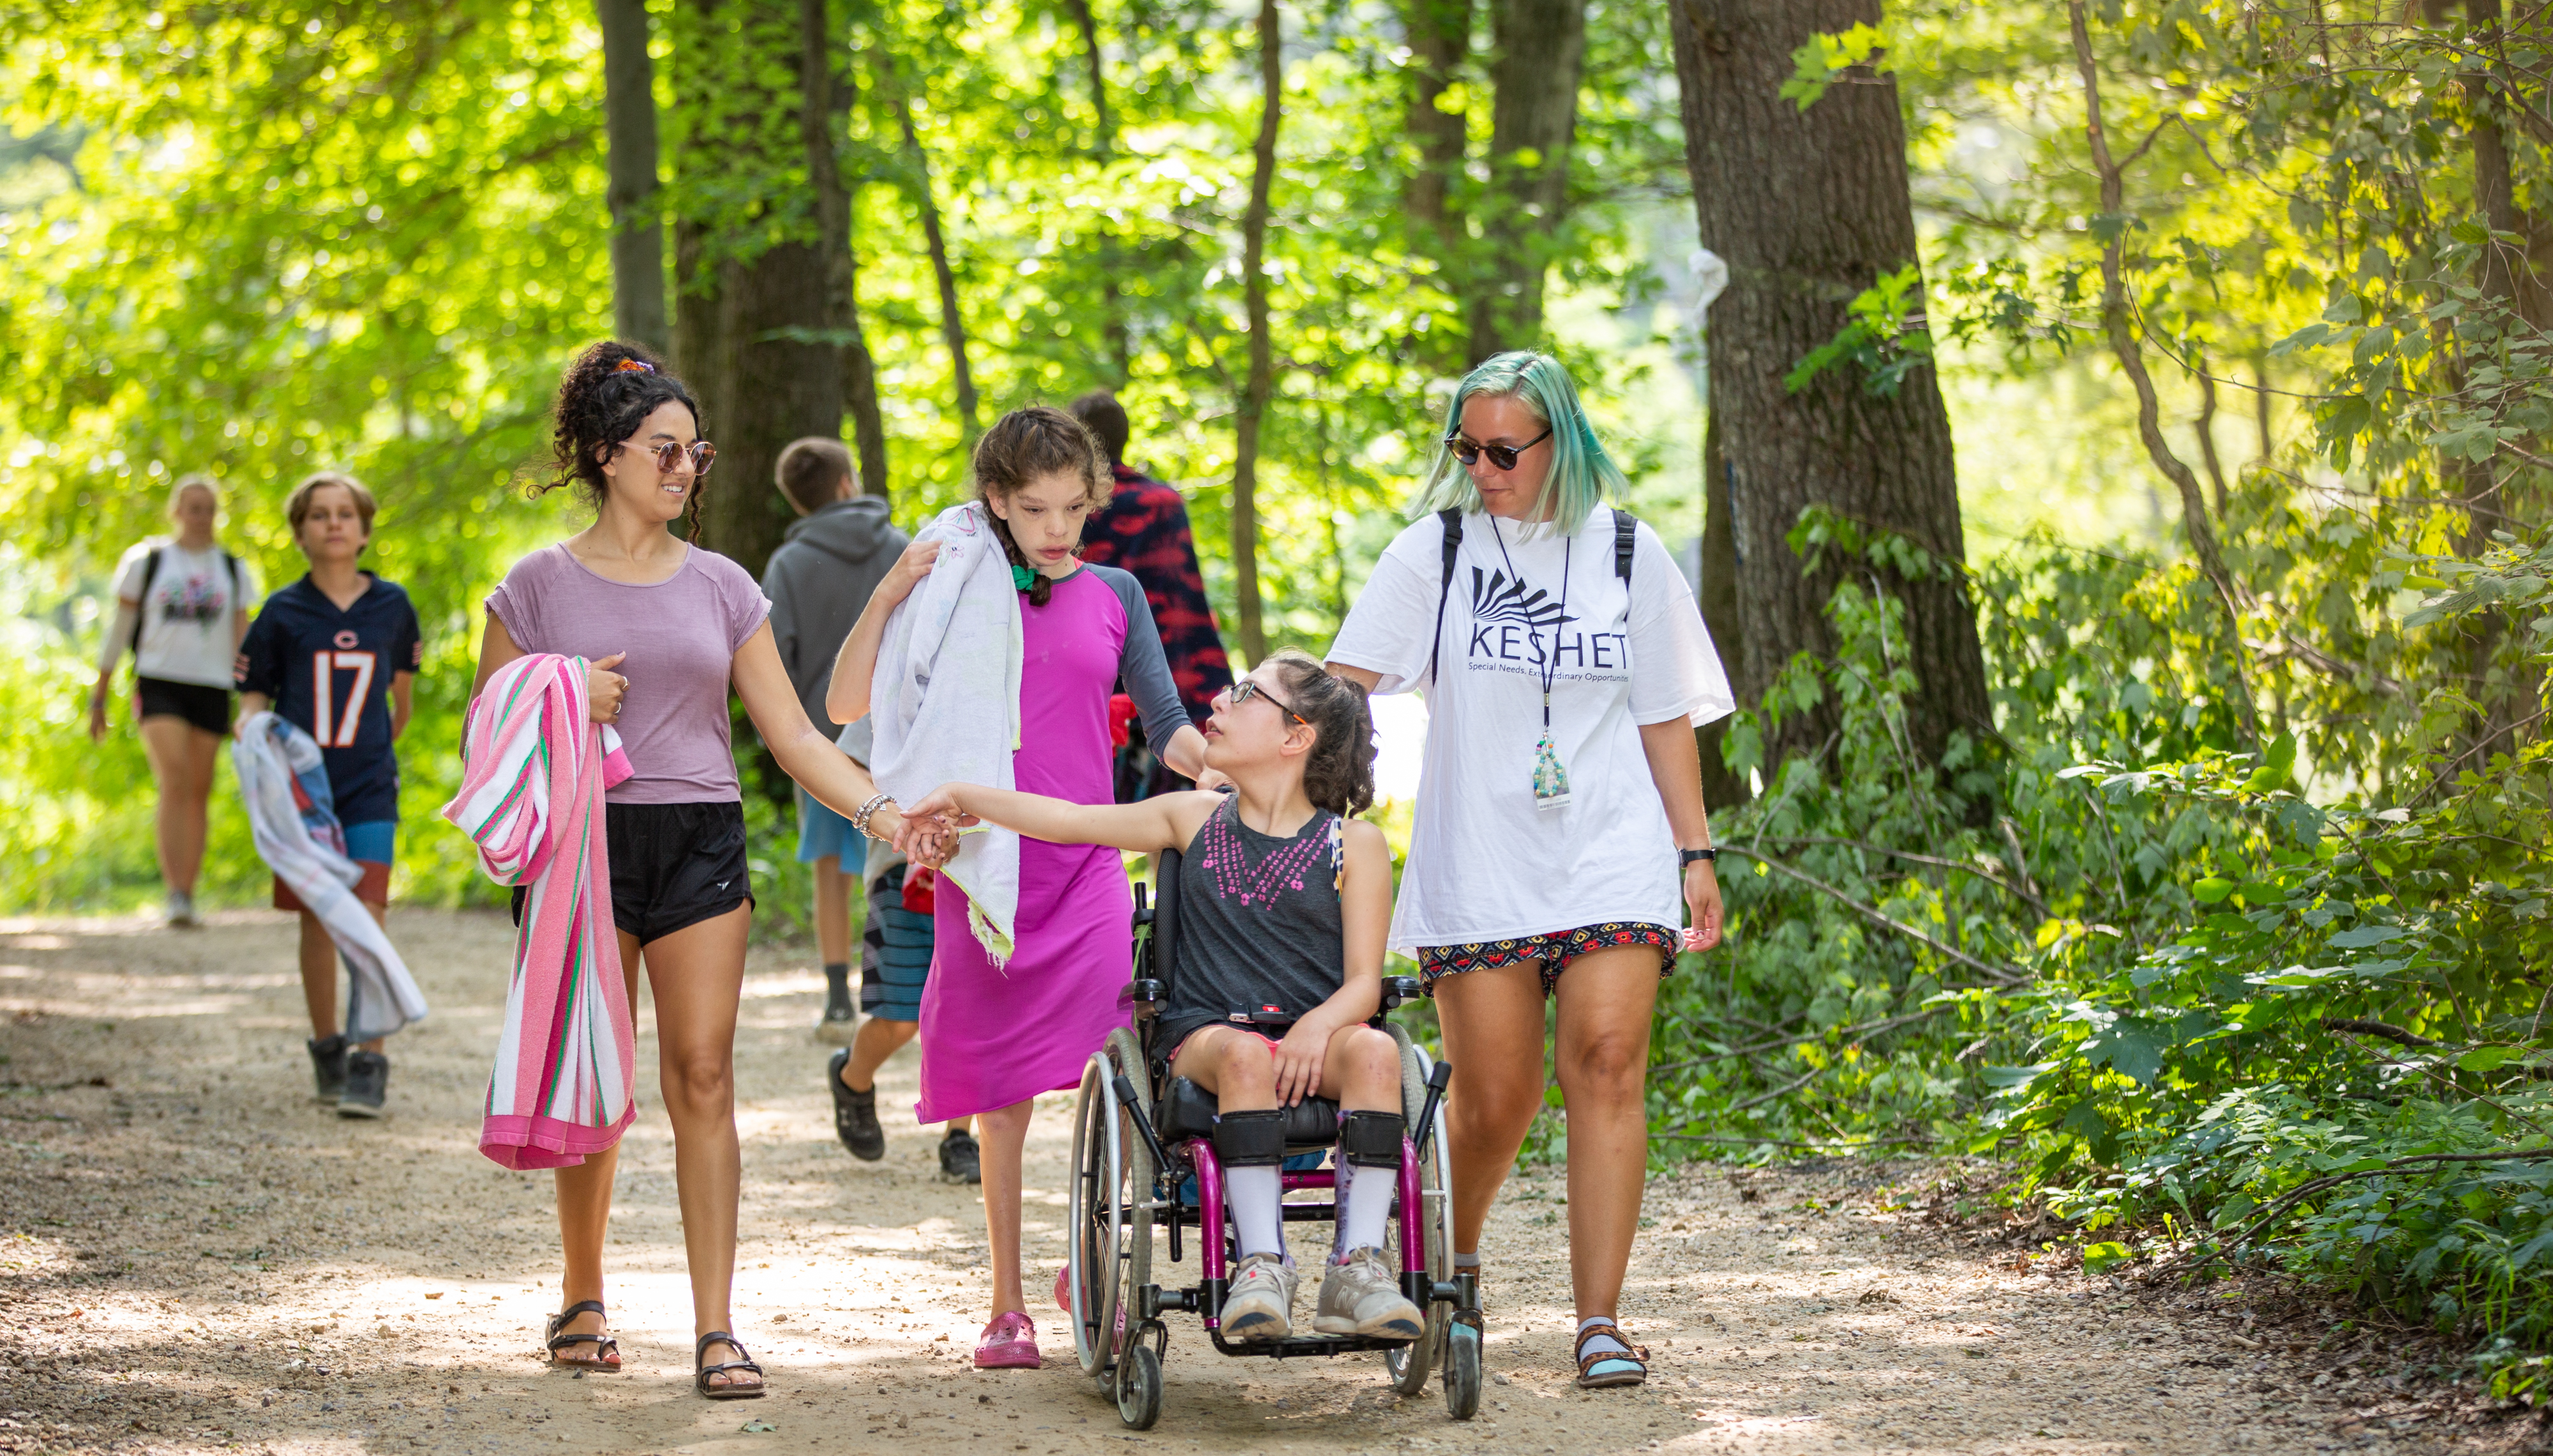 Creating a culture of belonging at Jewish summer camp